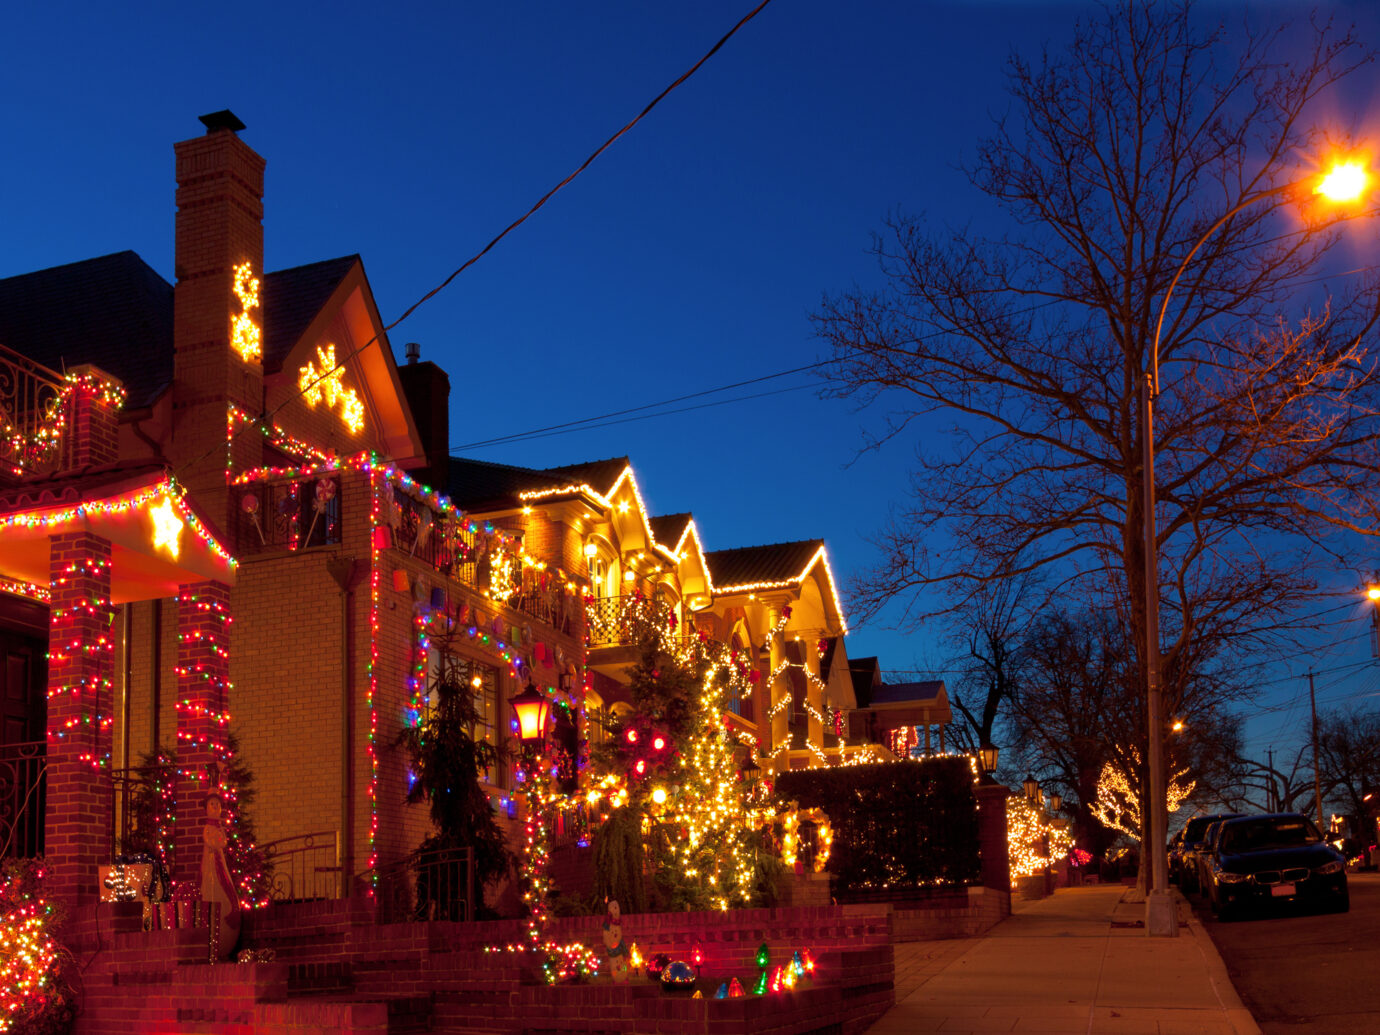 Homes with Christmas Lights in Dyker Heights neighbourhood of Brooklyn, New York, USA.